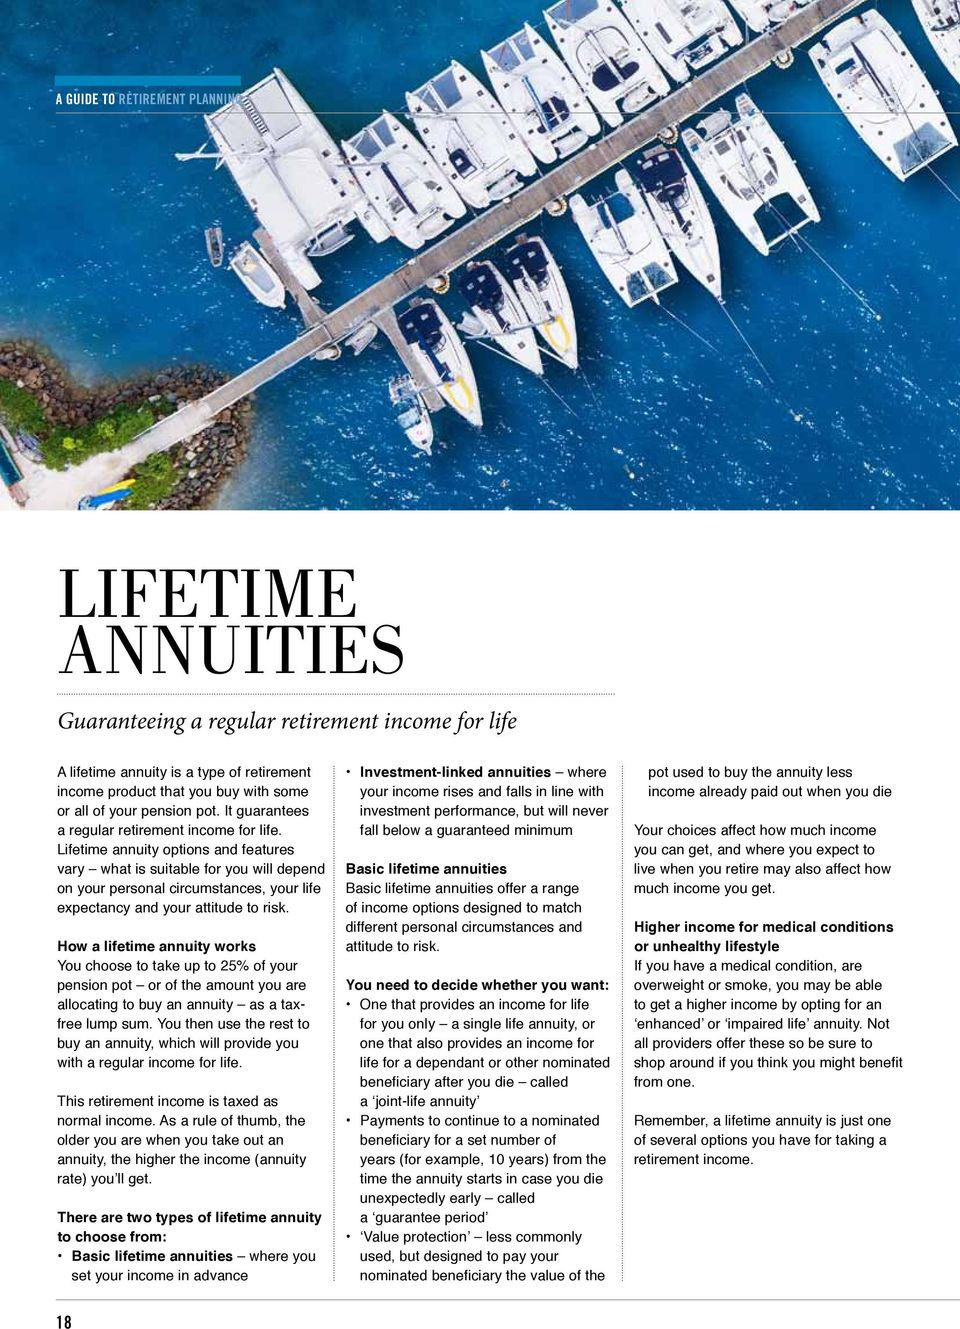 Lifetime annuity options and features vary what is suitable for you will depend on your personal circumstances, your life expectancy and your attitude to risk.